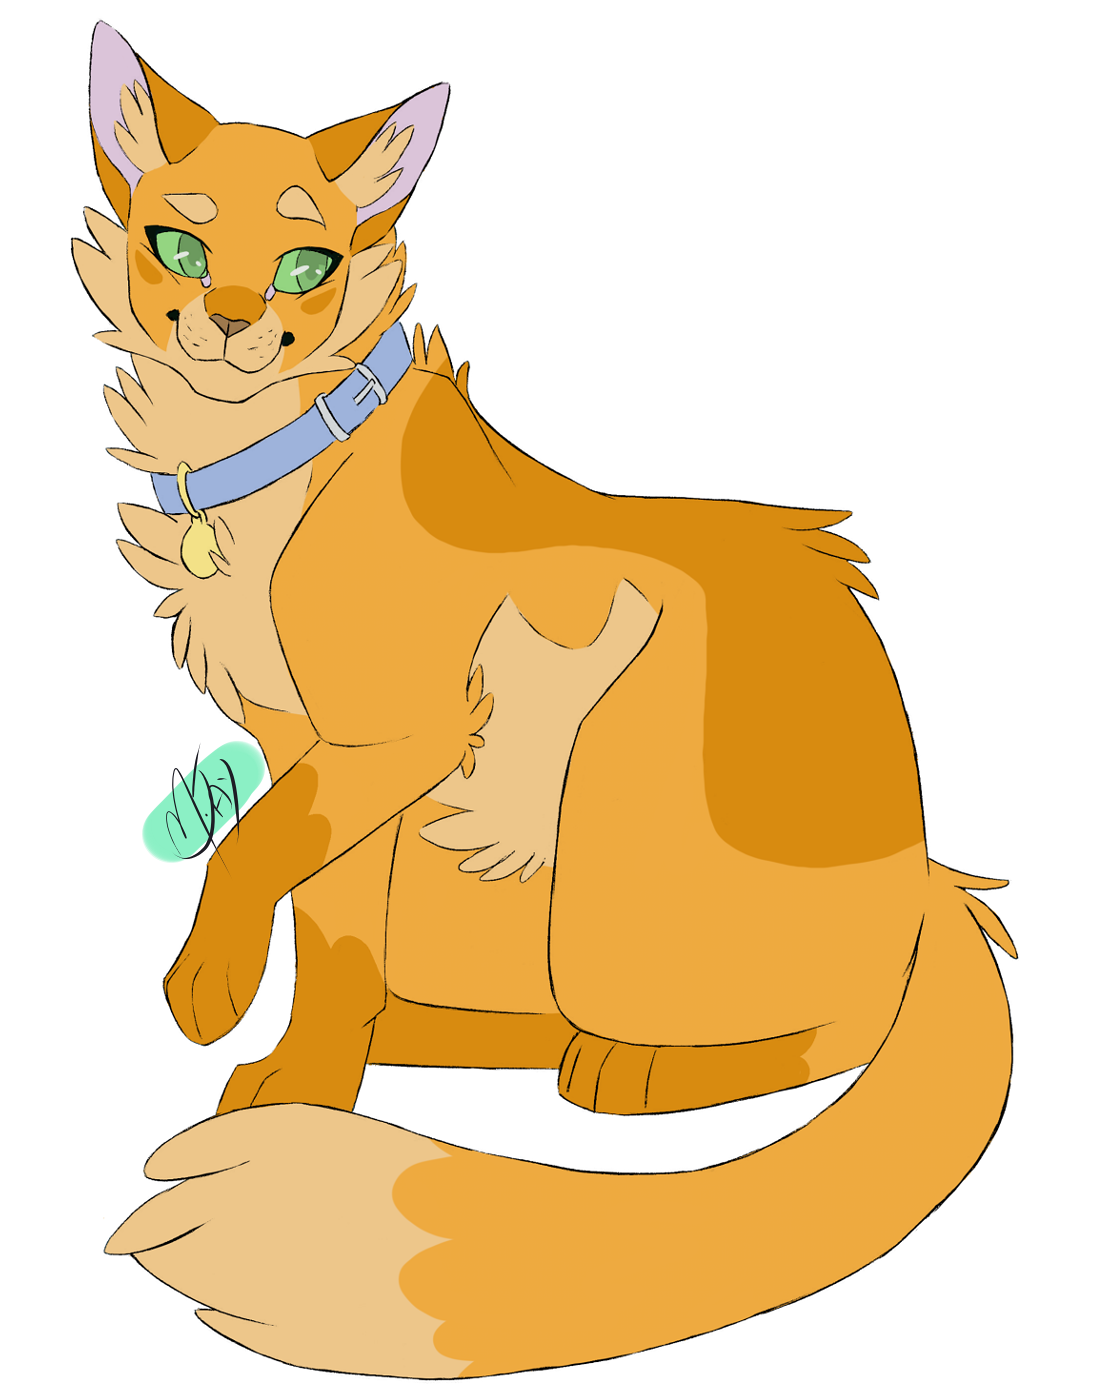 100 Warrior Cats Challenge 38 - Jake Awww this gay furball